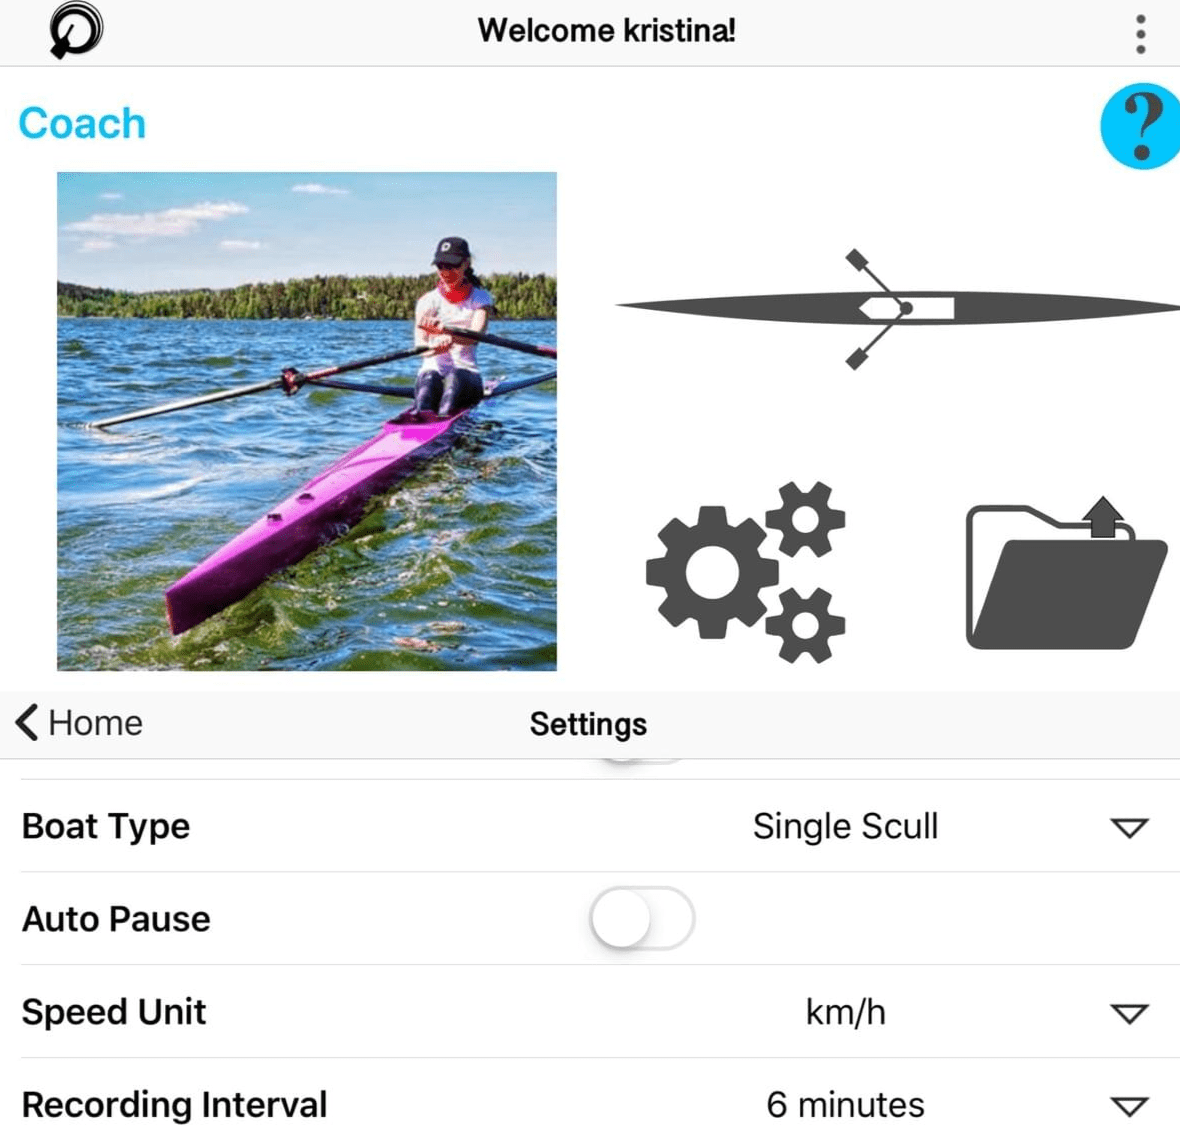 The Quiske Rowing App can measure intervals which is useful when making crew selections